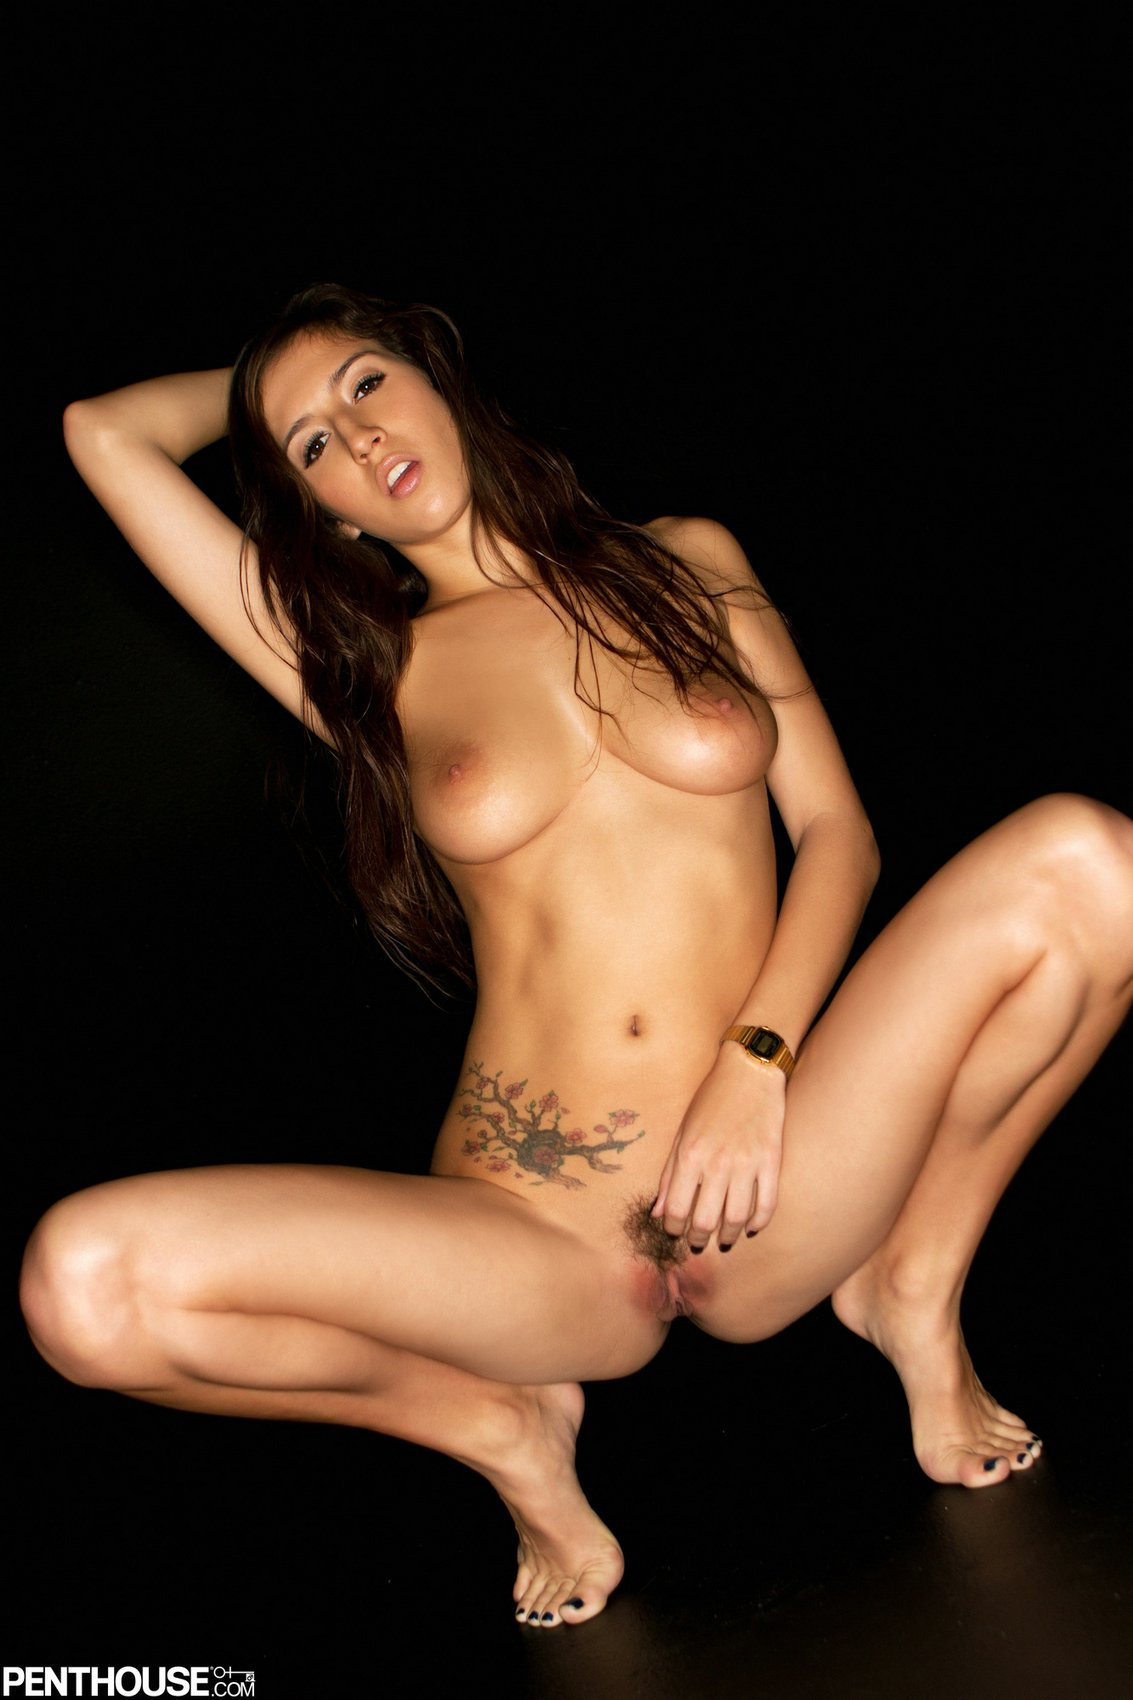 April o neil nude topic can